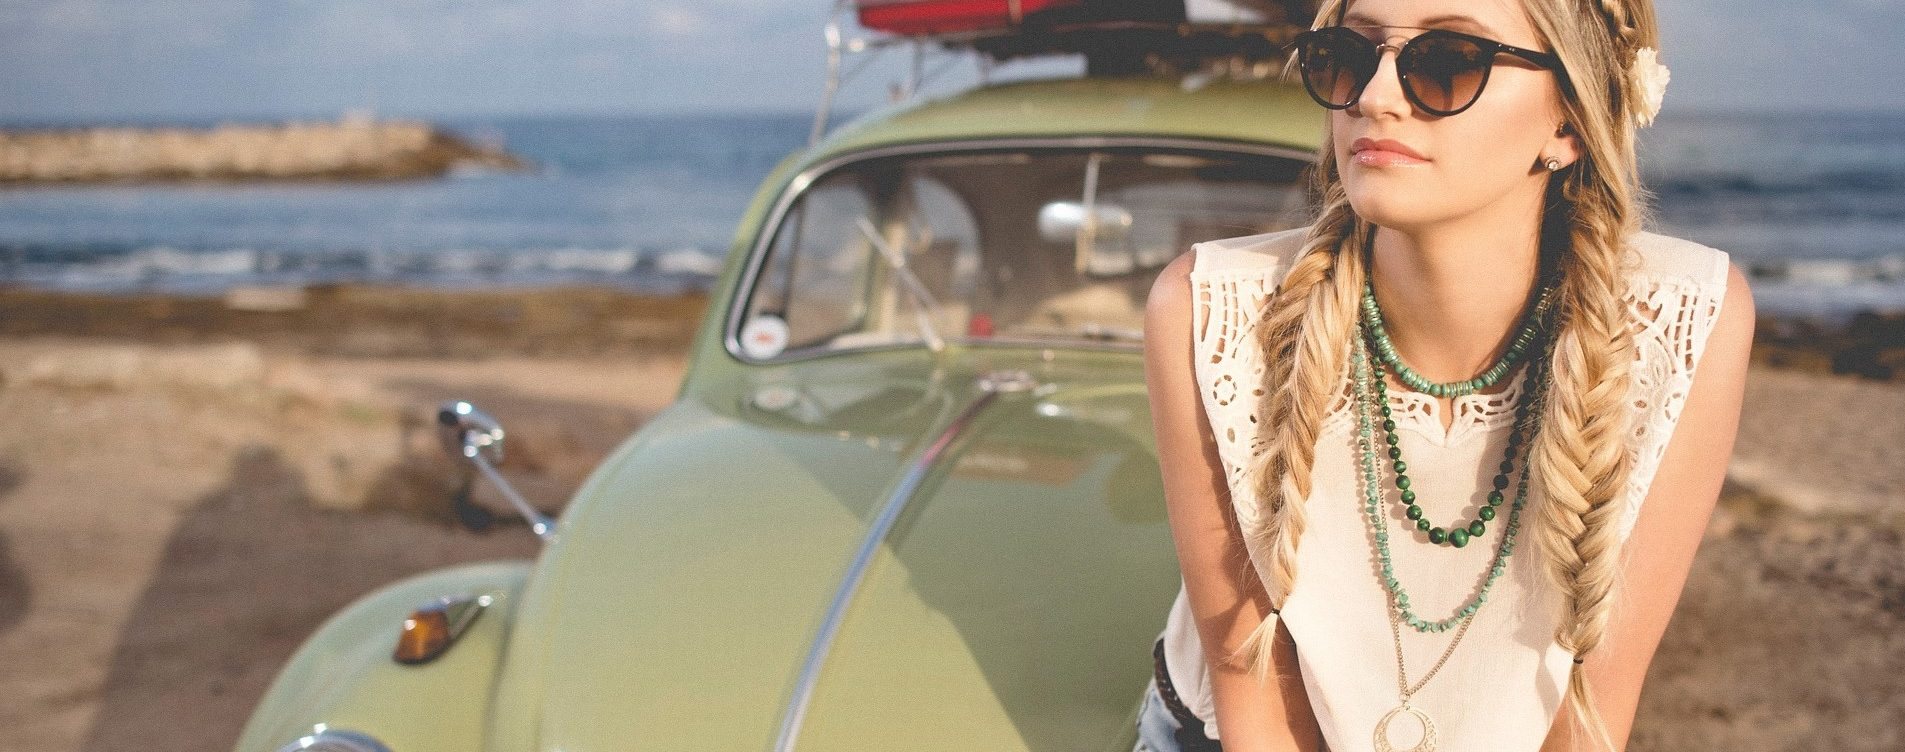 Woman with a Green Oldtimer Beetle | Breast Cancer Car Donations